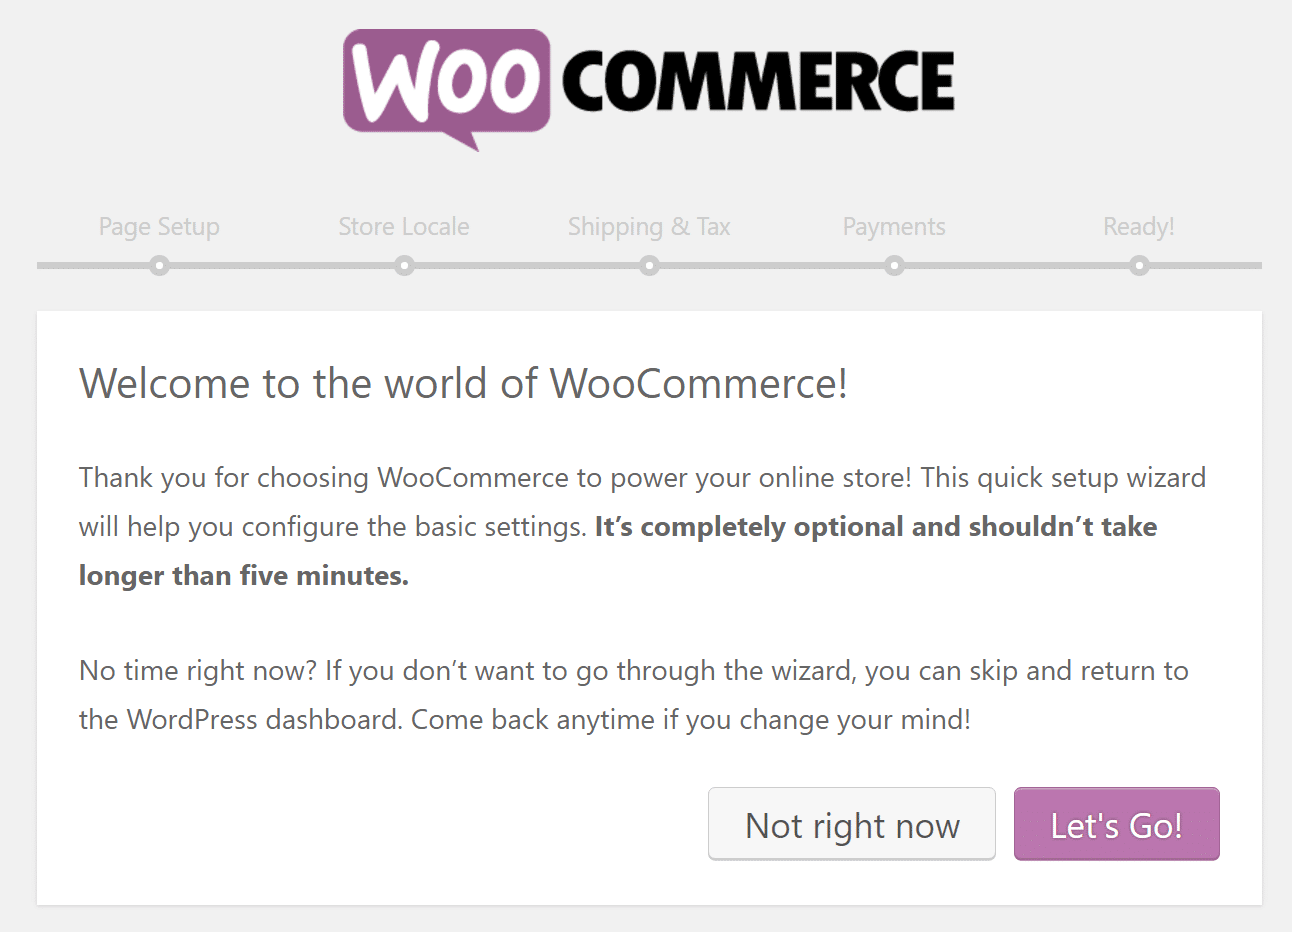 The WooCommerce setup wizard